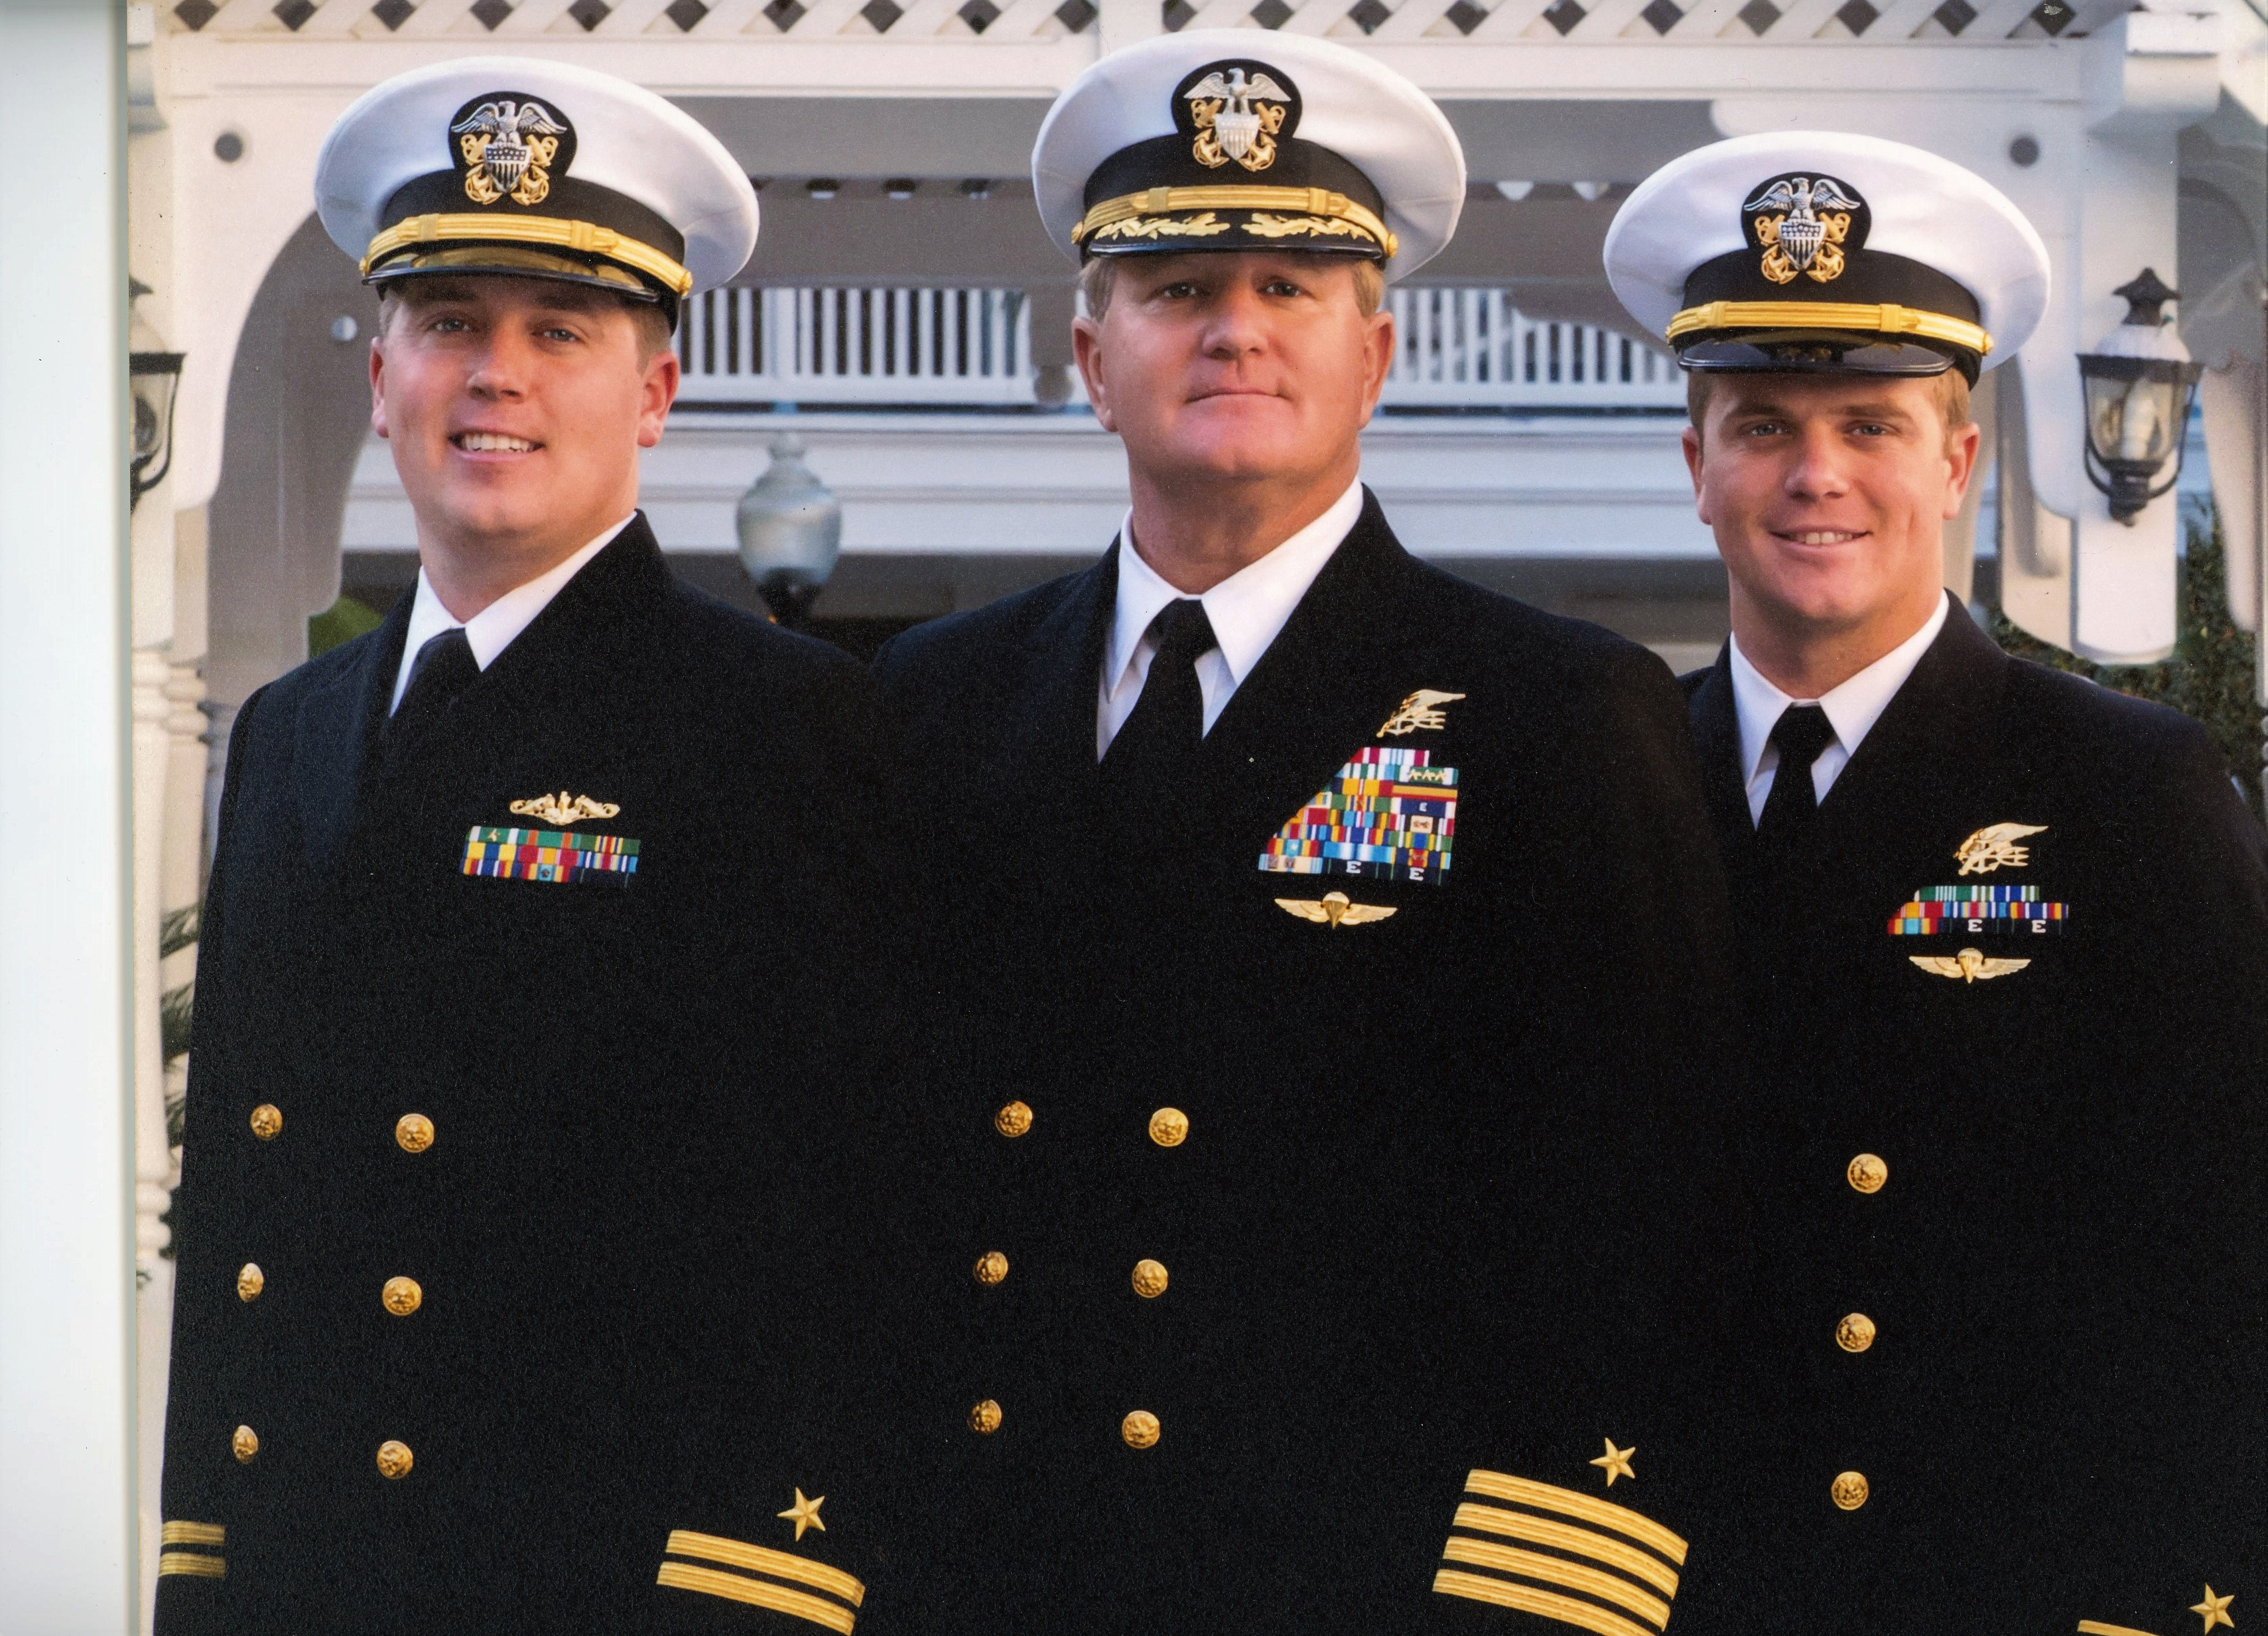 Retired Navy Captain Richard Sisk stands with his sons Brian and Sean, who are also in Navy uniforms.